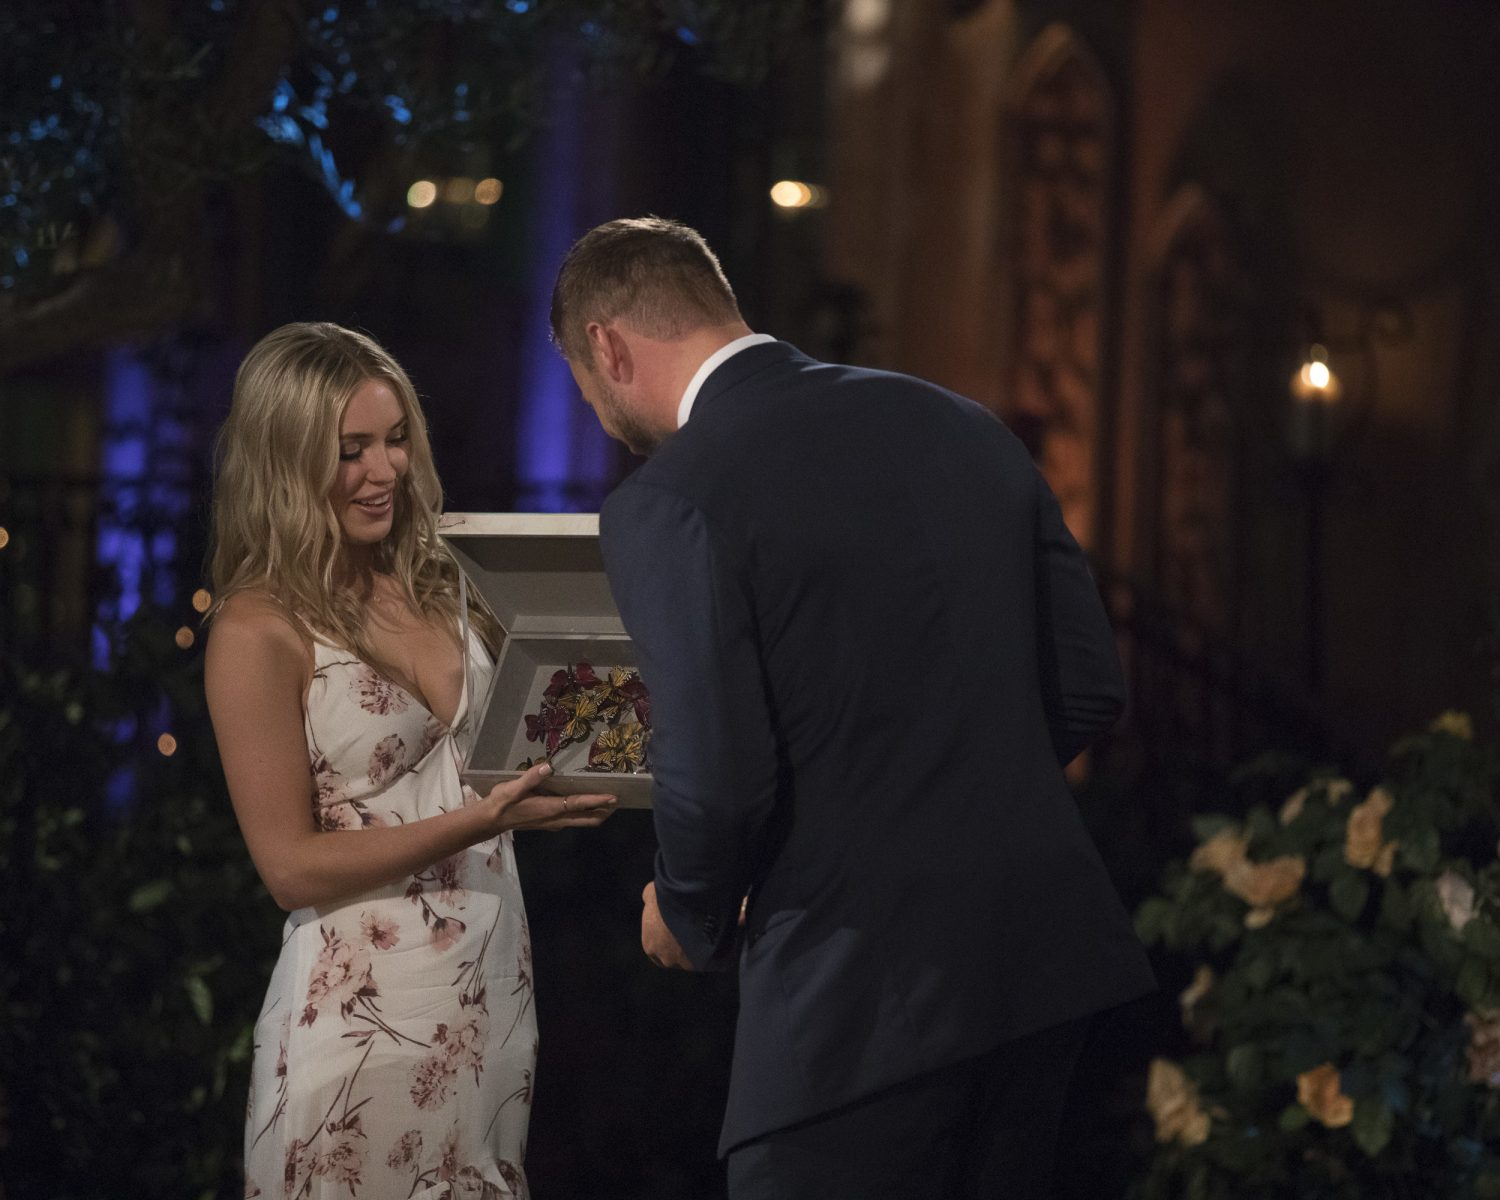 Bachelor Colton Underwood Is Dating Cassie Randolph After Dramatic Season 23 Finale